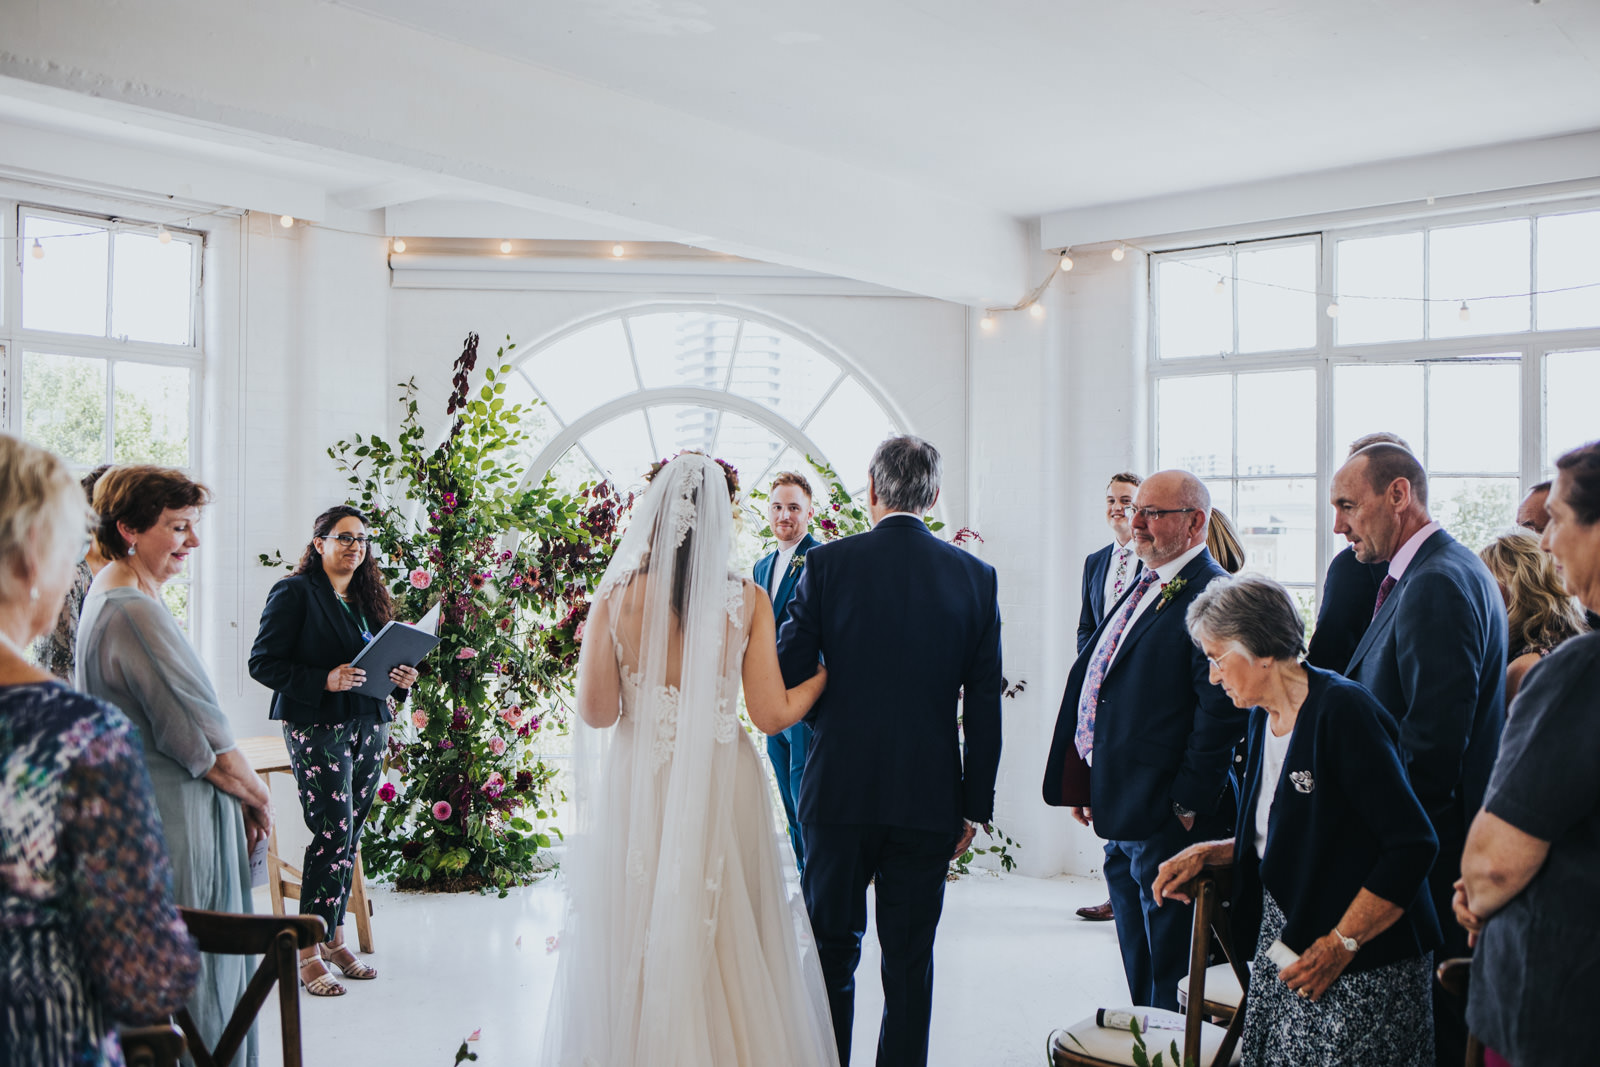 Bride's entrance at the Wimbourne House wedding in Shoreditch